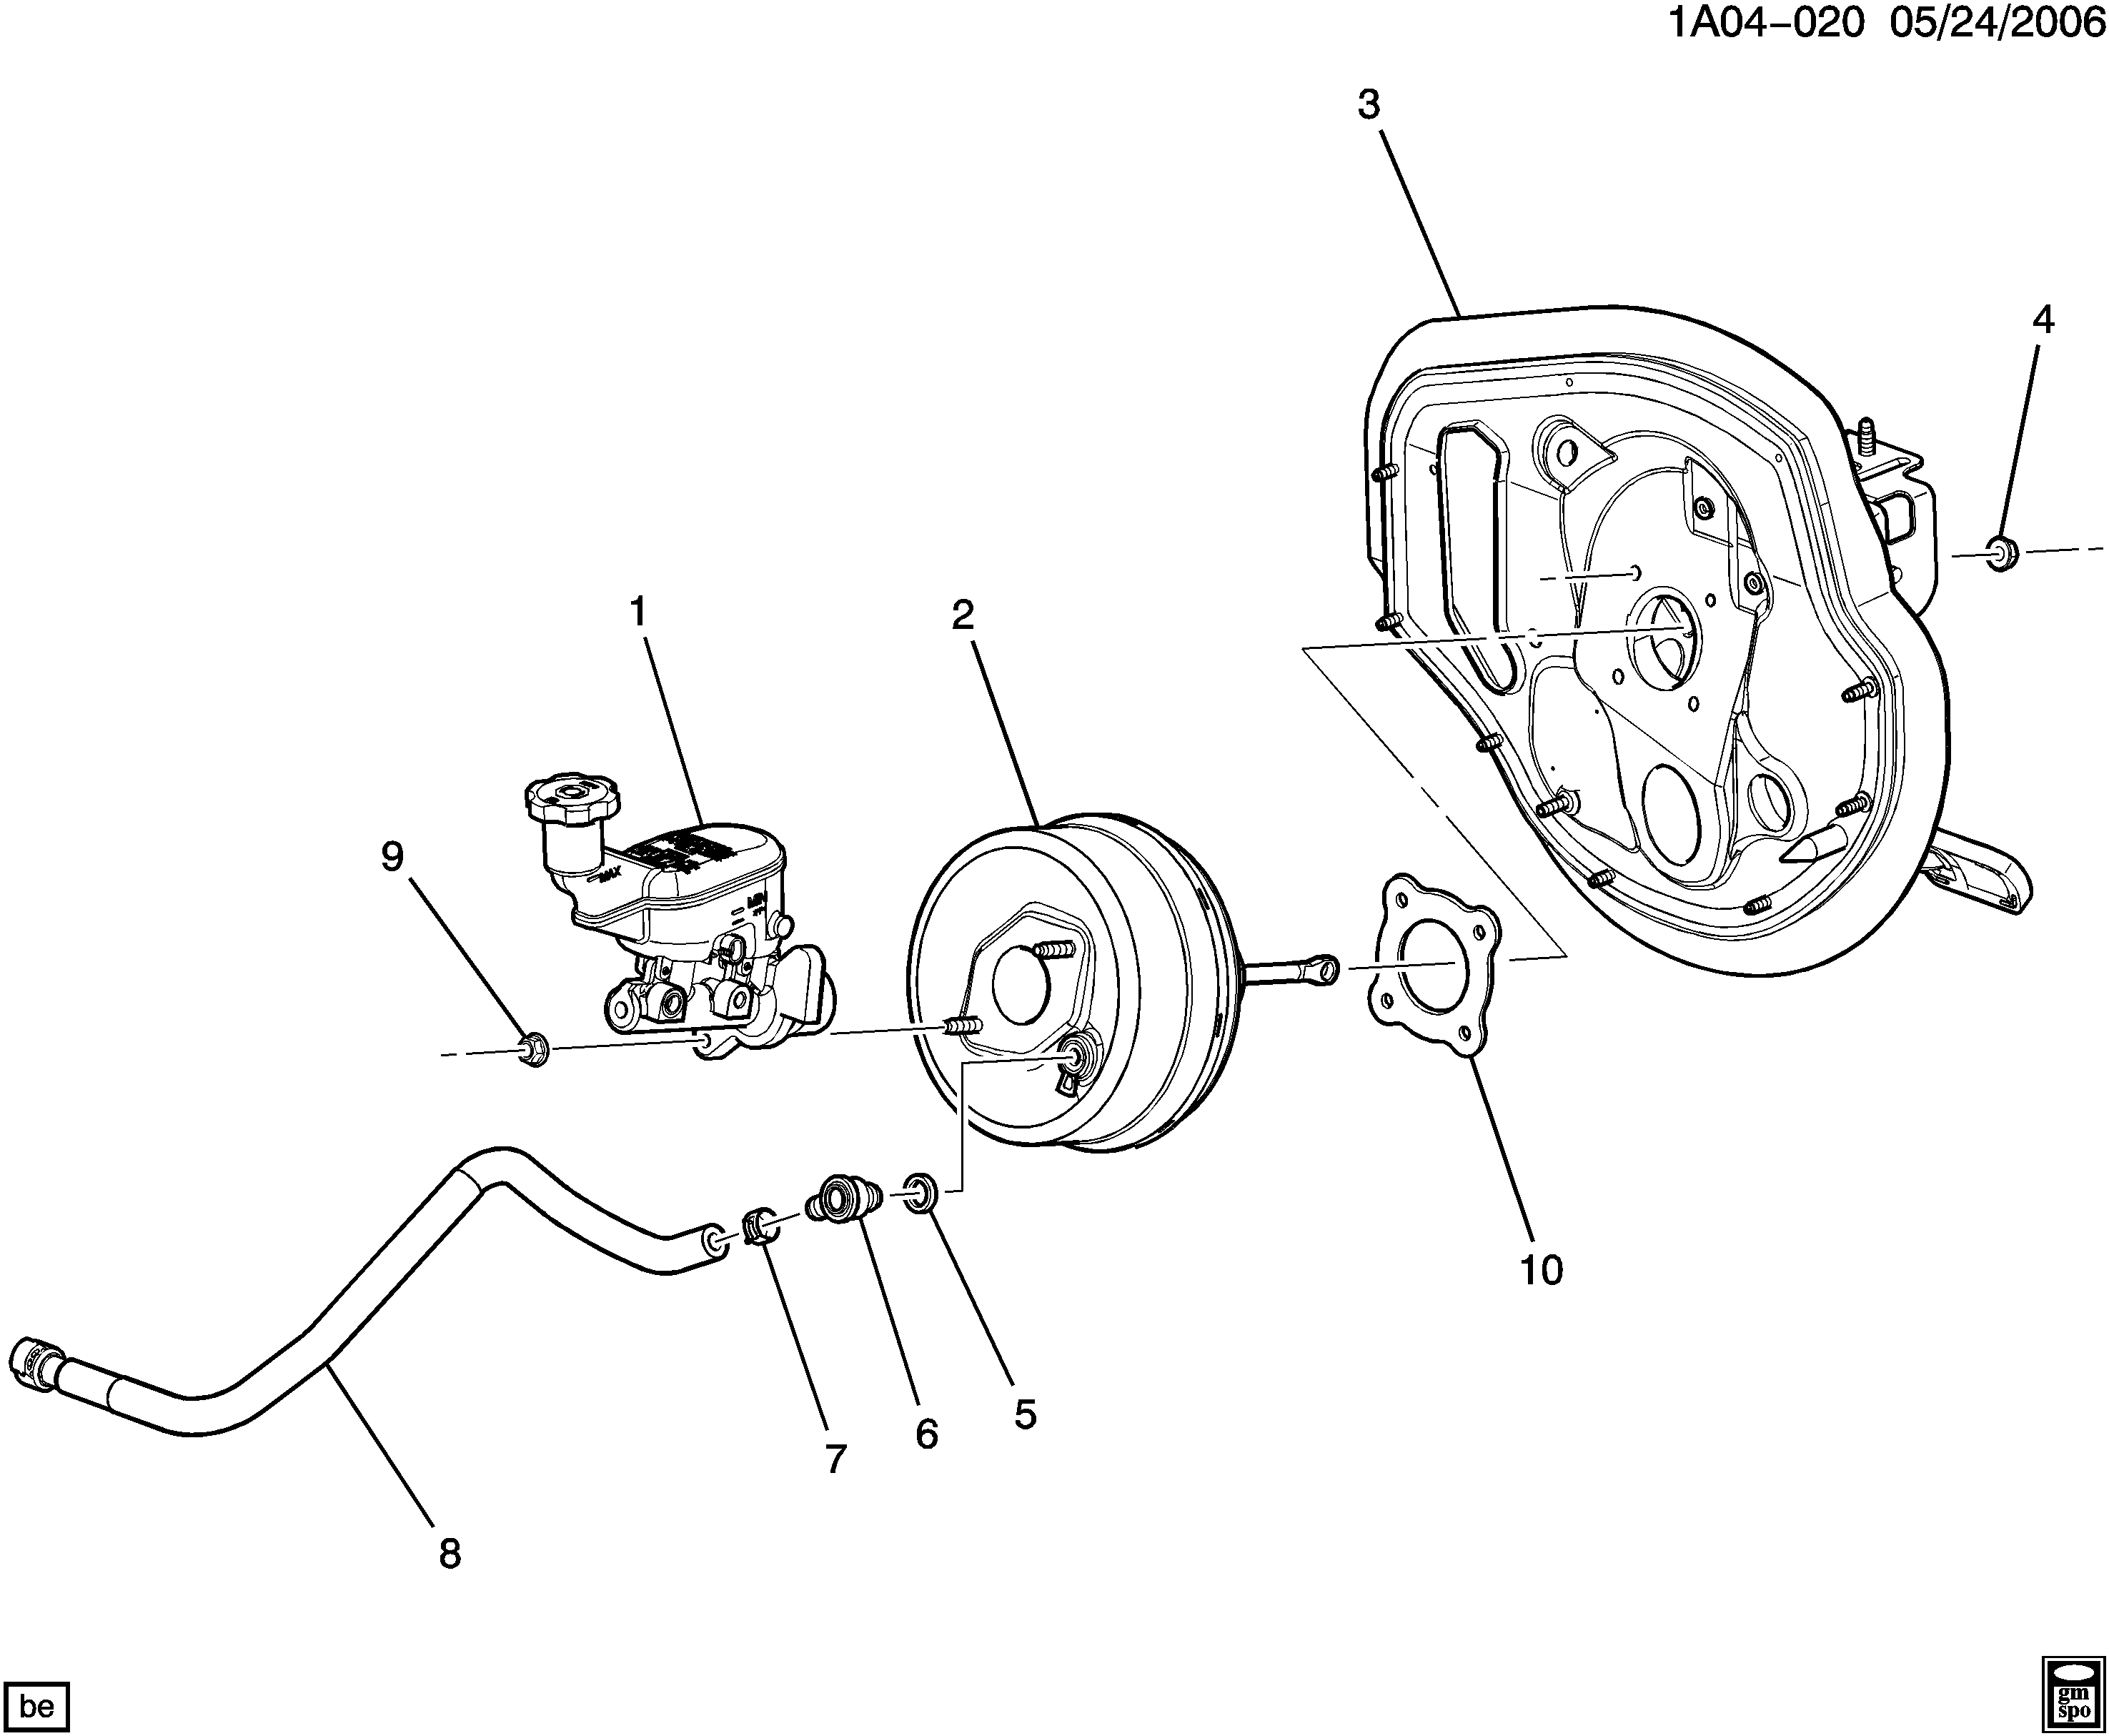 master cylinder diagram chevy cobalt electrical wiring diagrams rh wiringforall today 2003 chevy impala master cylinder brake line diagram 2003 chevy impala master cylinder brake line diagram